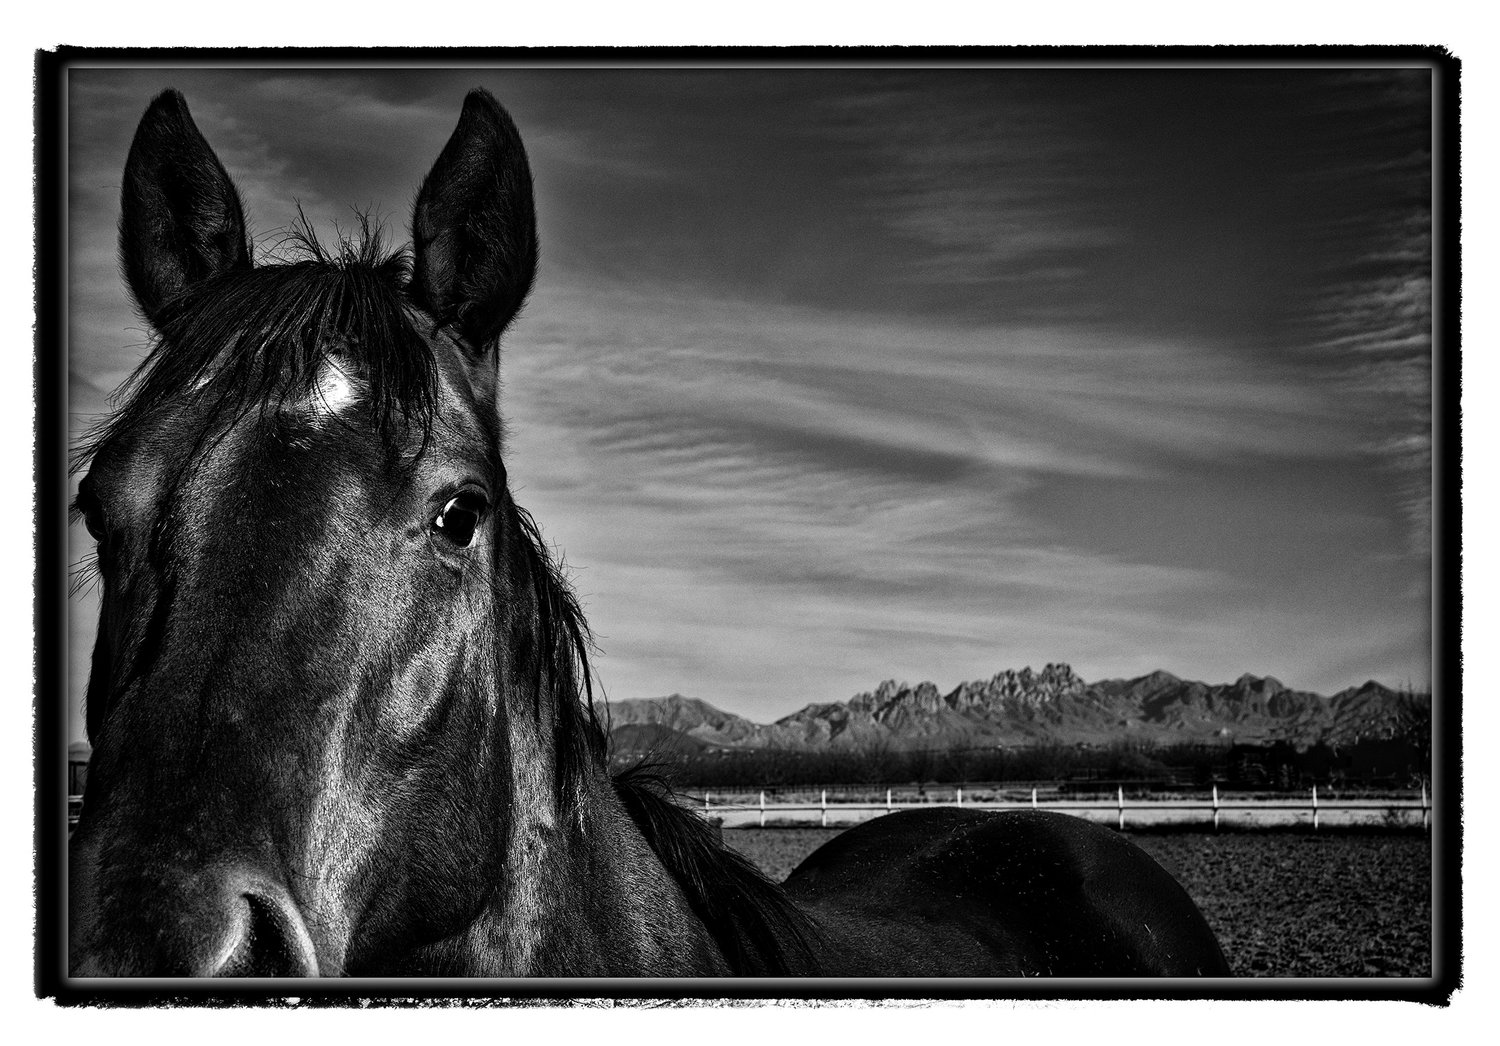 I love driving on North Valley looking for photographs; there's one horse ranch I stop at. There are a couple of issues: The horses may be merely grazing, not an especially compelling image; or, the horses may be attracted to me and hang around too closely, again, not a compelling image. On this day, the horse wandered over and was too close; but, then, some noise west of us caught its attention; that pose I liked.